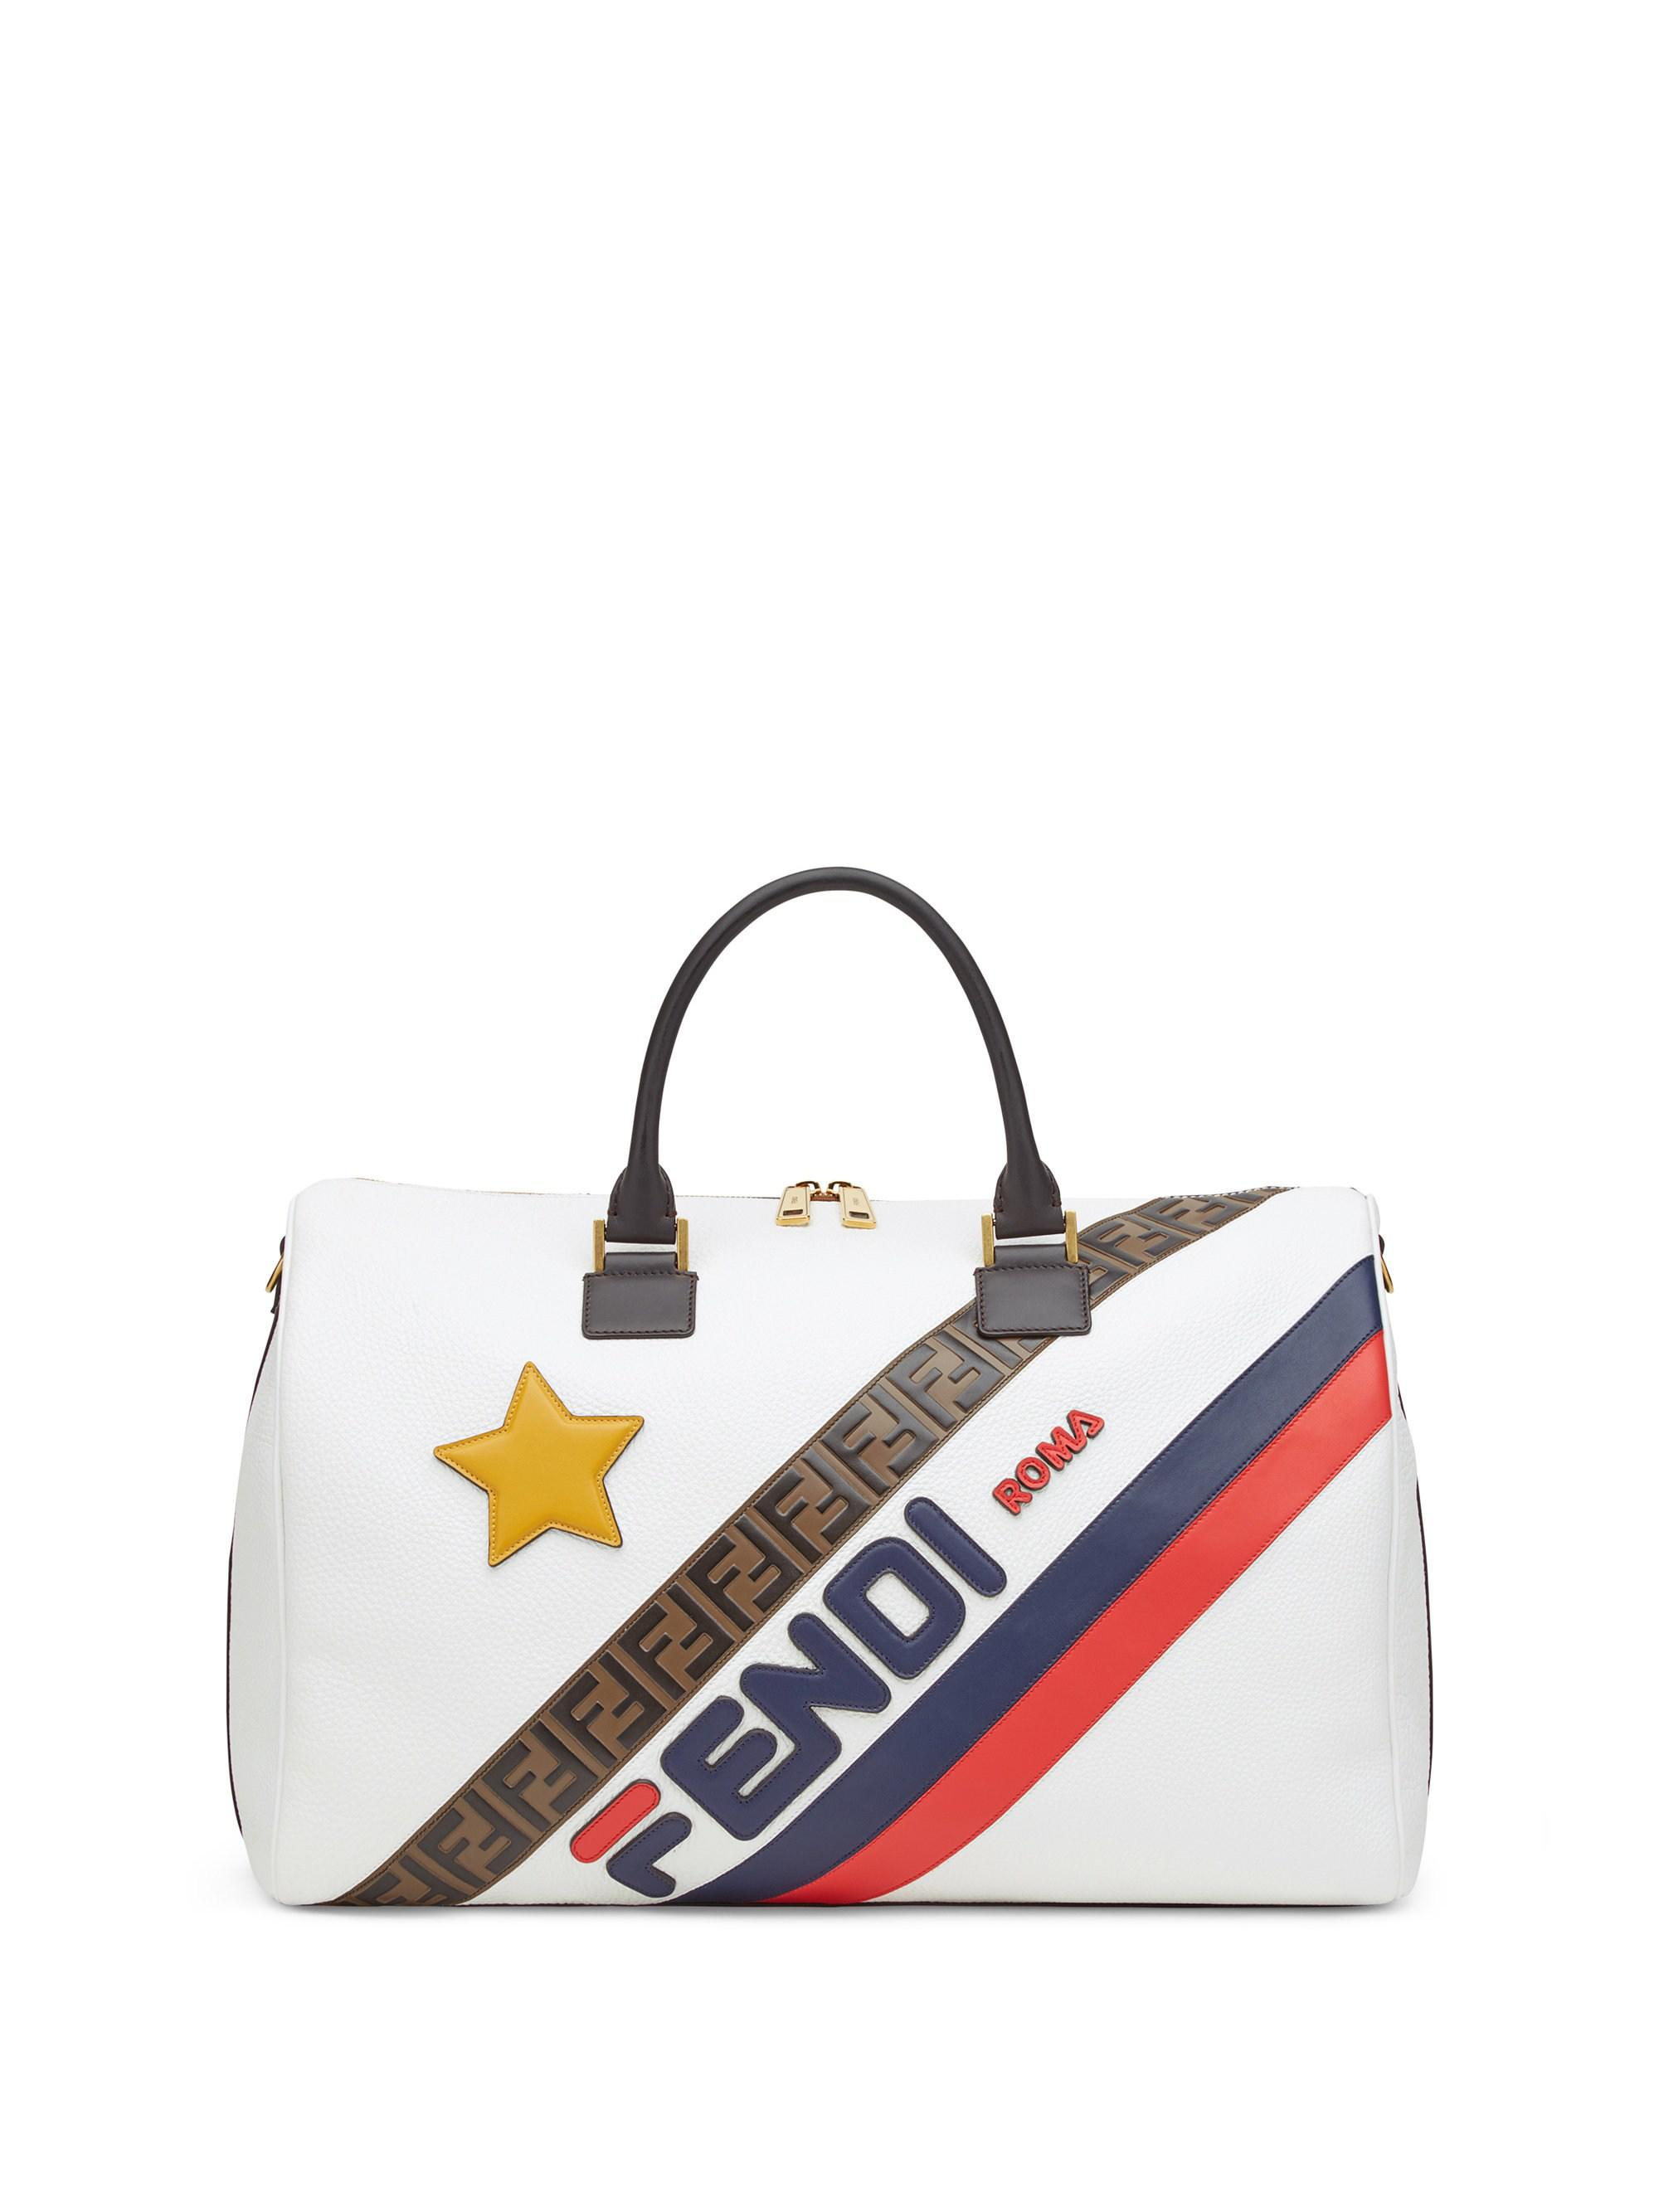 fbc24084bf40 Fendi - White Mania Leather Stripe Tote - Lyst. View fullscreen